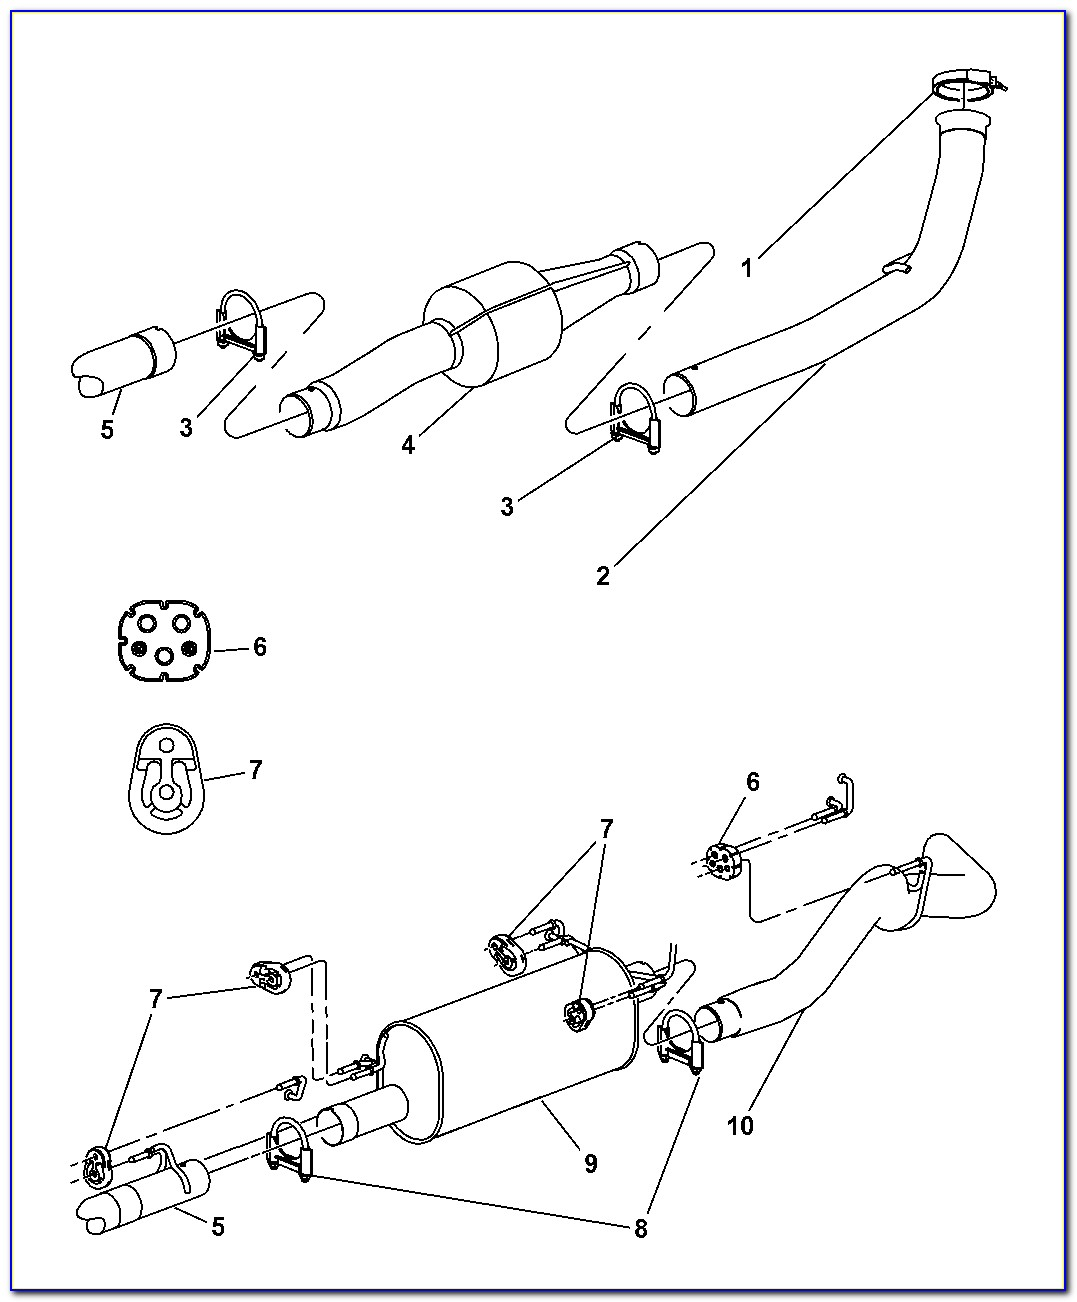 2004 Dodge Ram 1500 Hemi Exhaust System Diagram